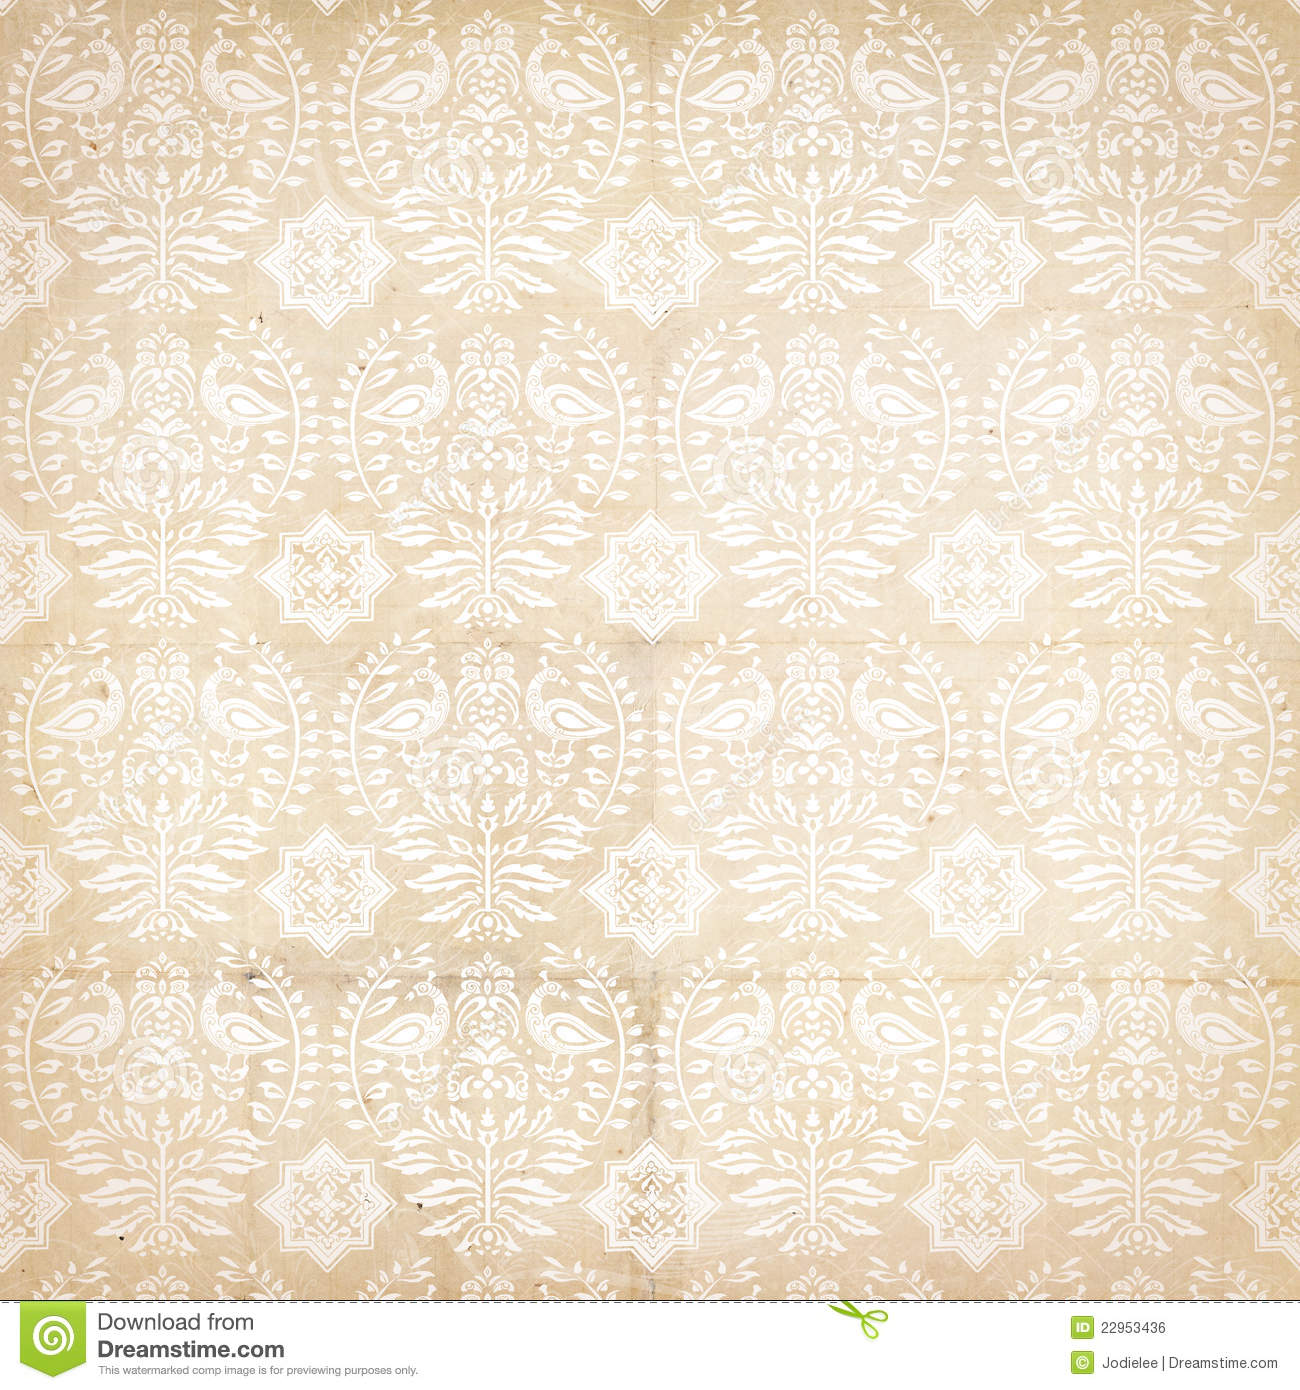 Folk antique vintage damask pattern with bird